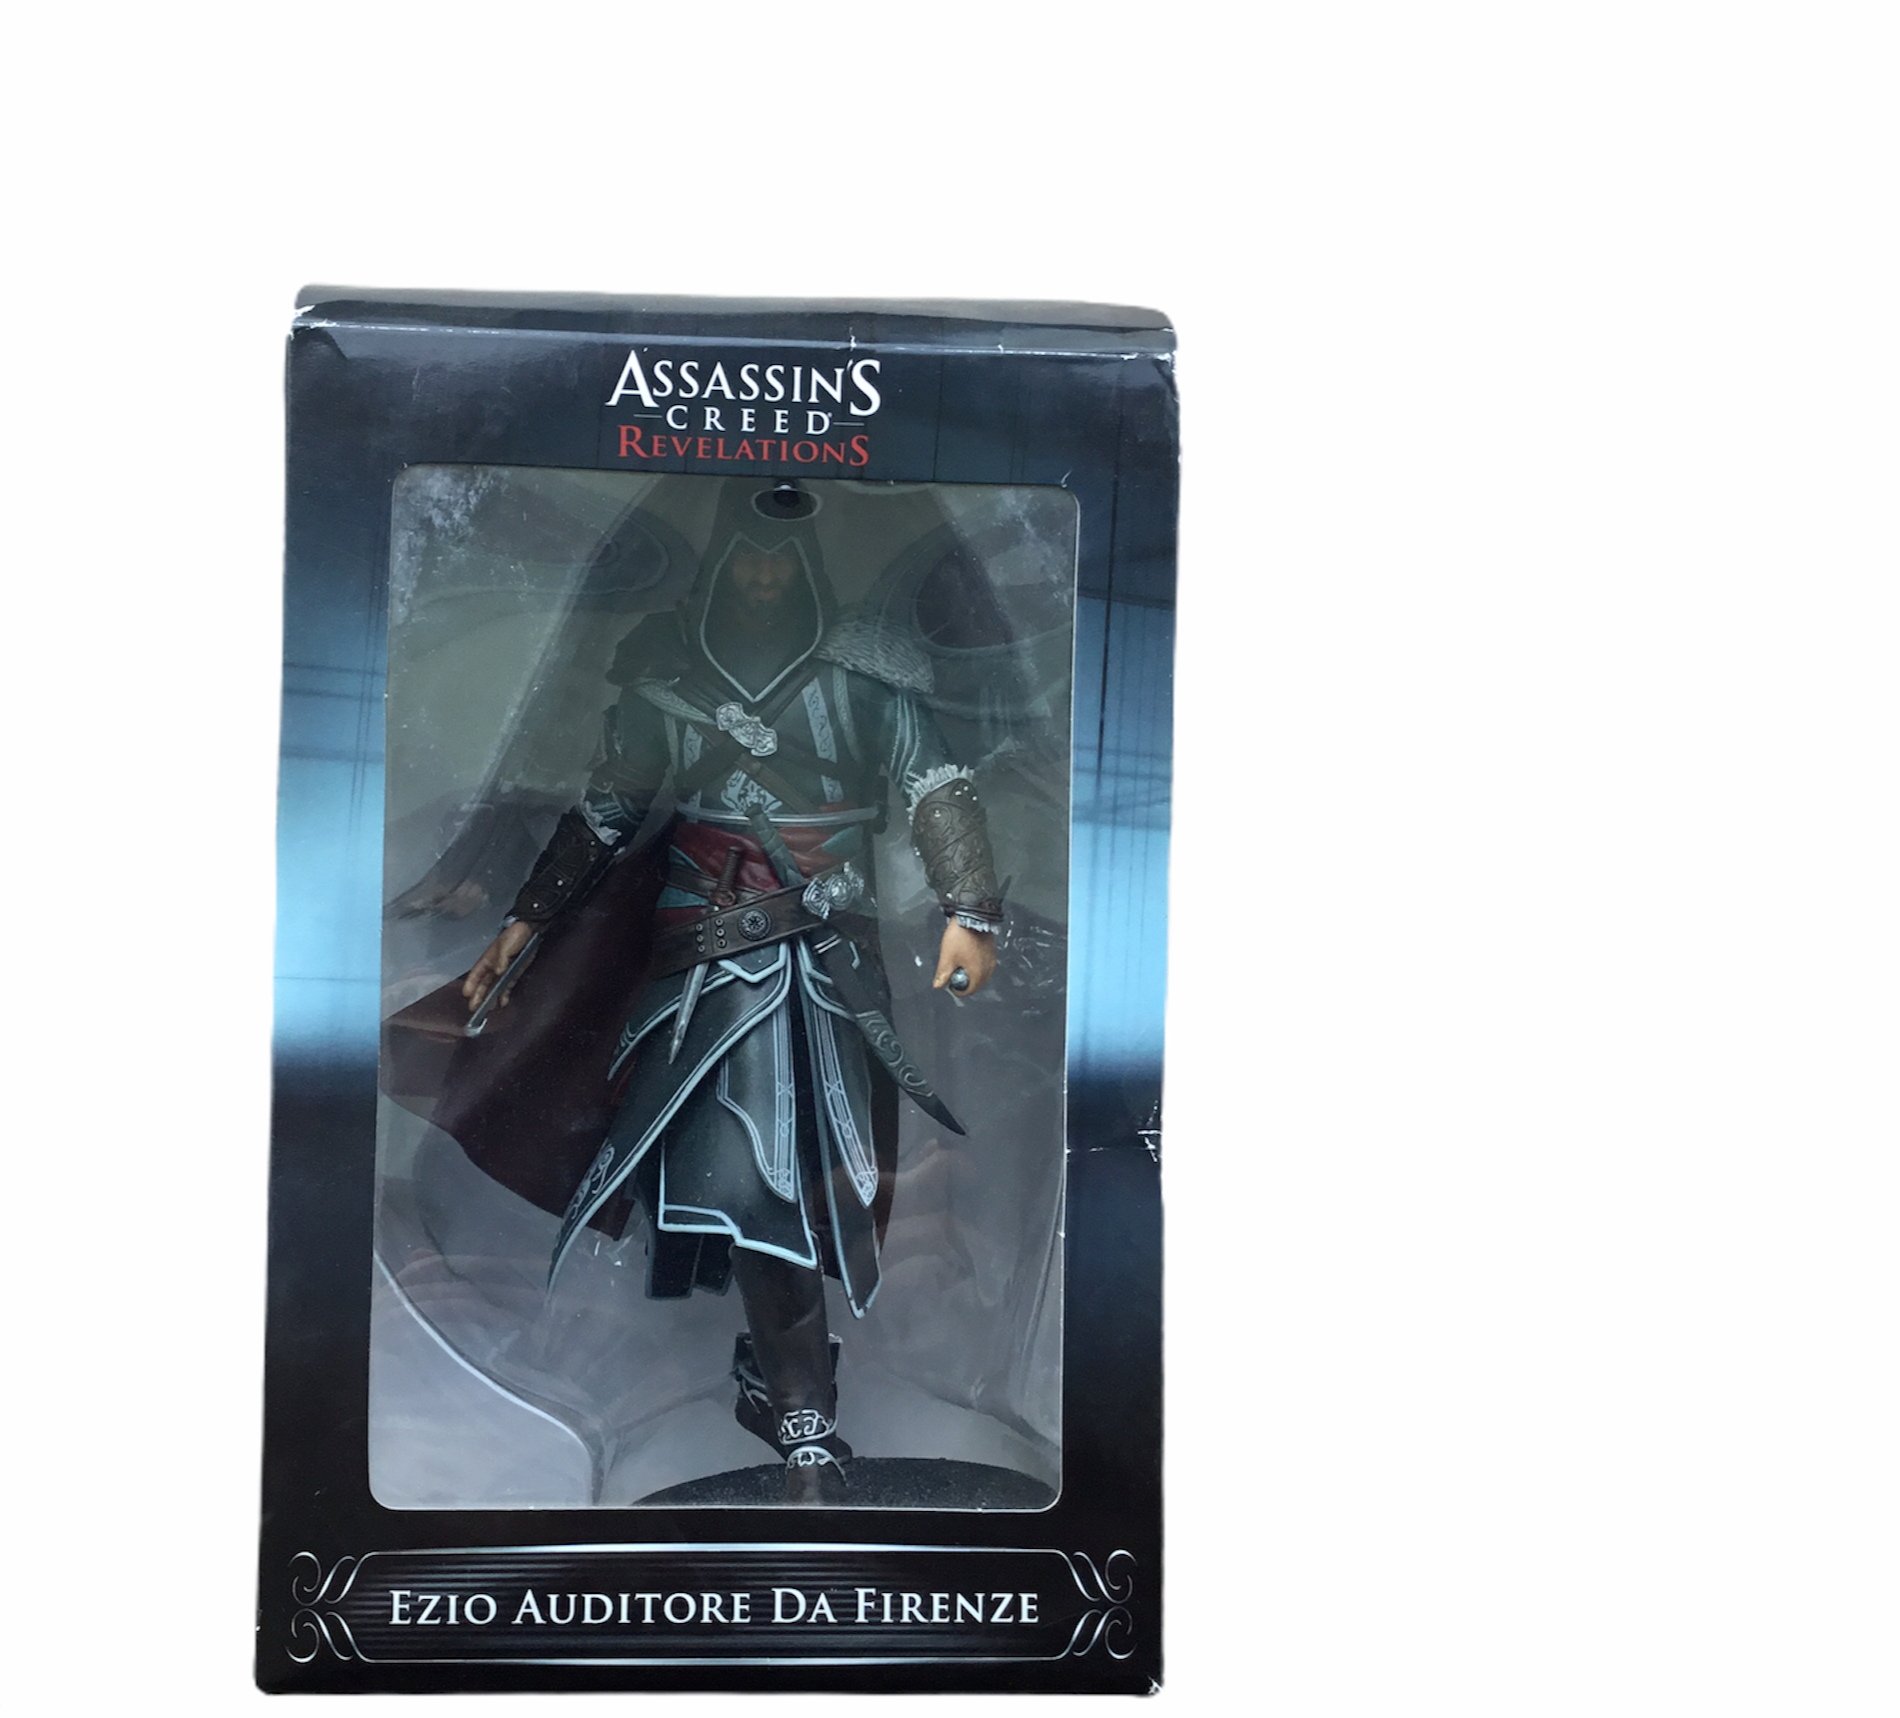 Assassin Creed Revelations Figurine Ezio Auditore Da Firenze